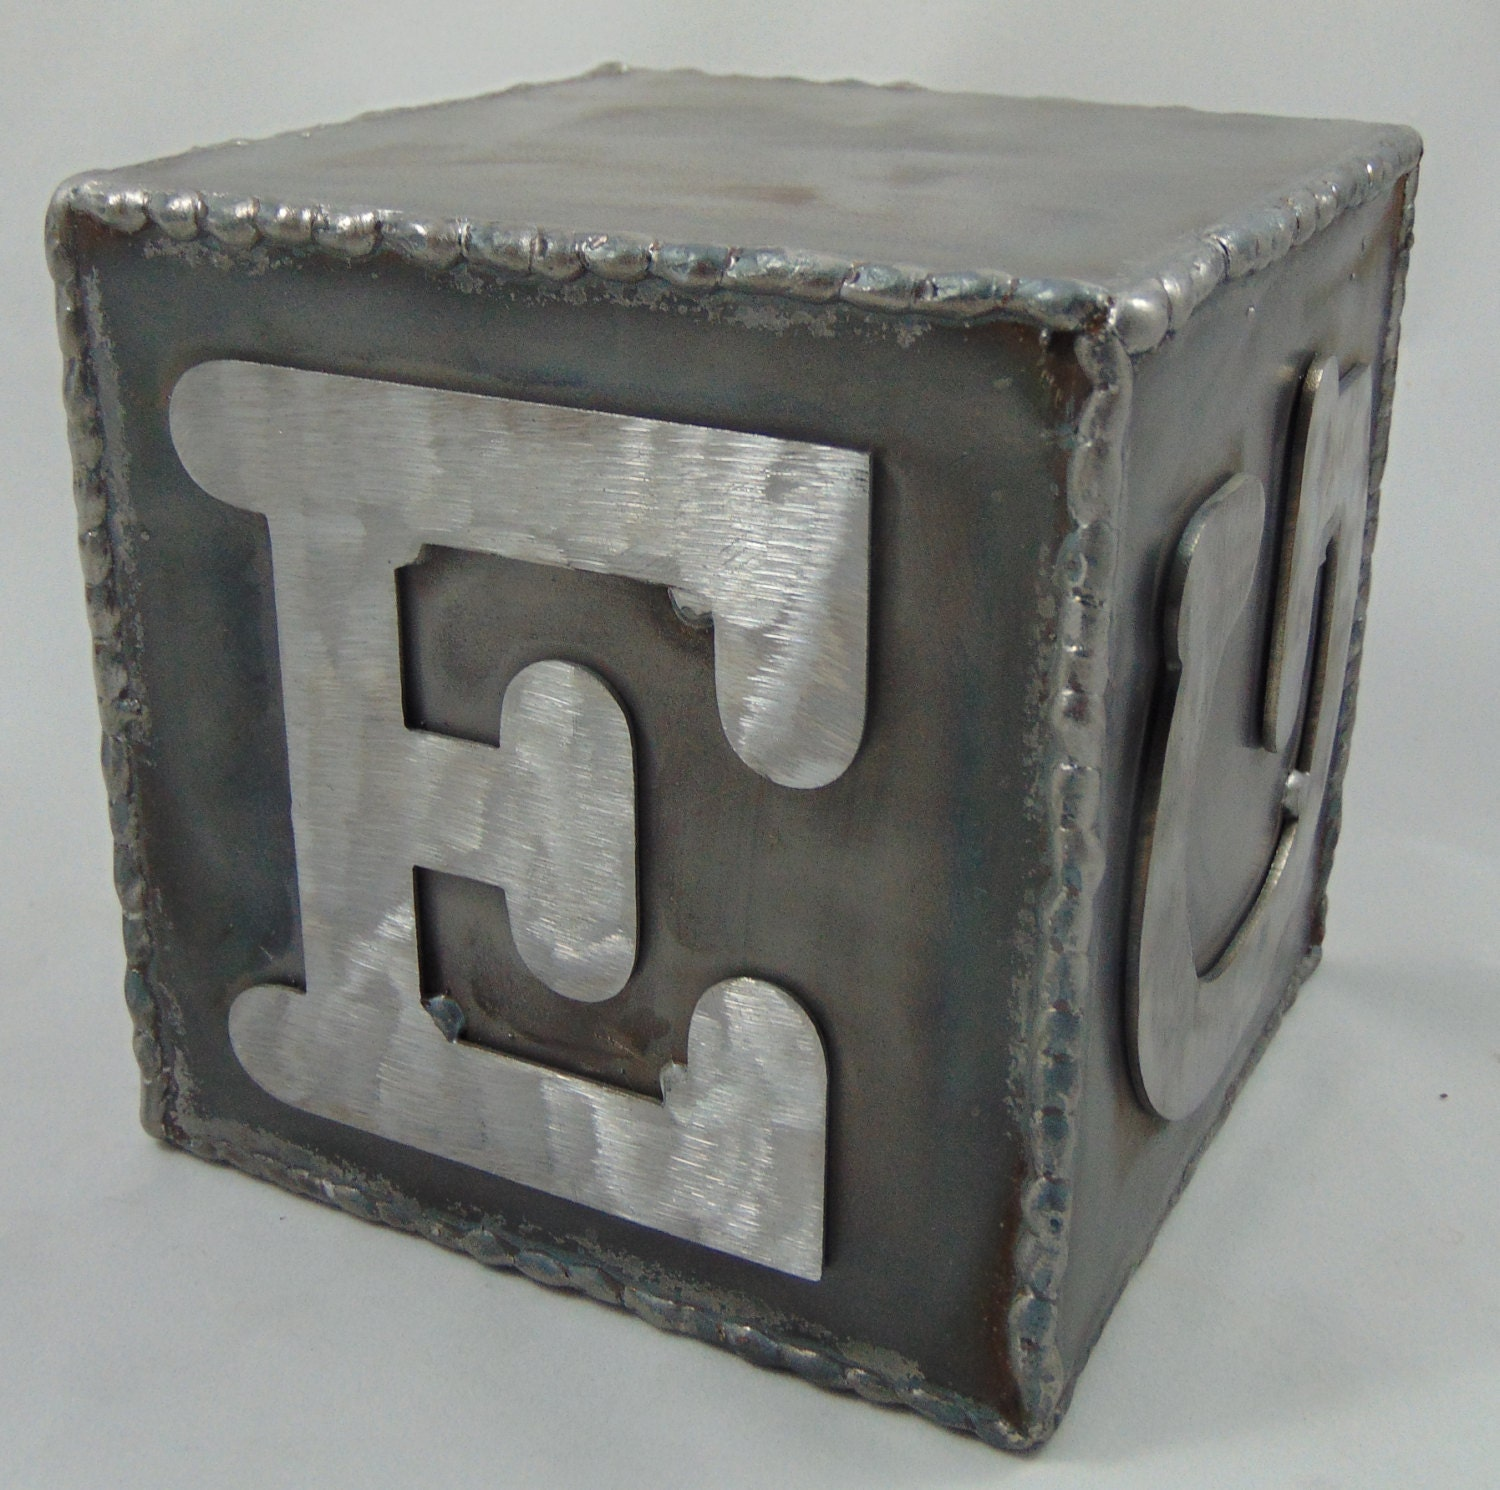 Metal alphabet block with custom letters 5 decor for Custom block letters